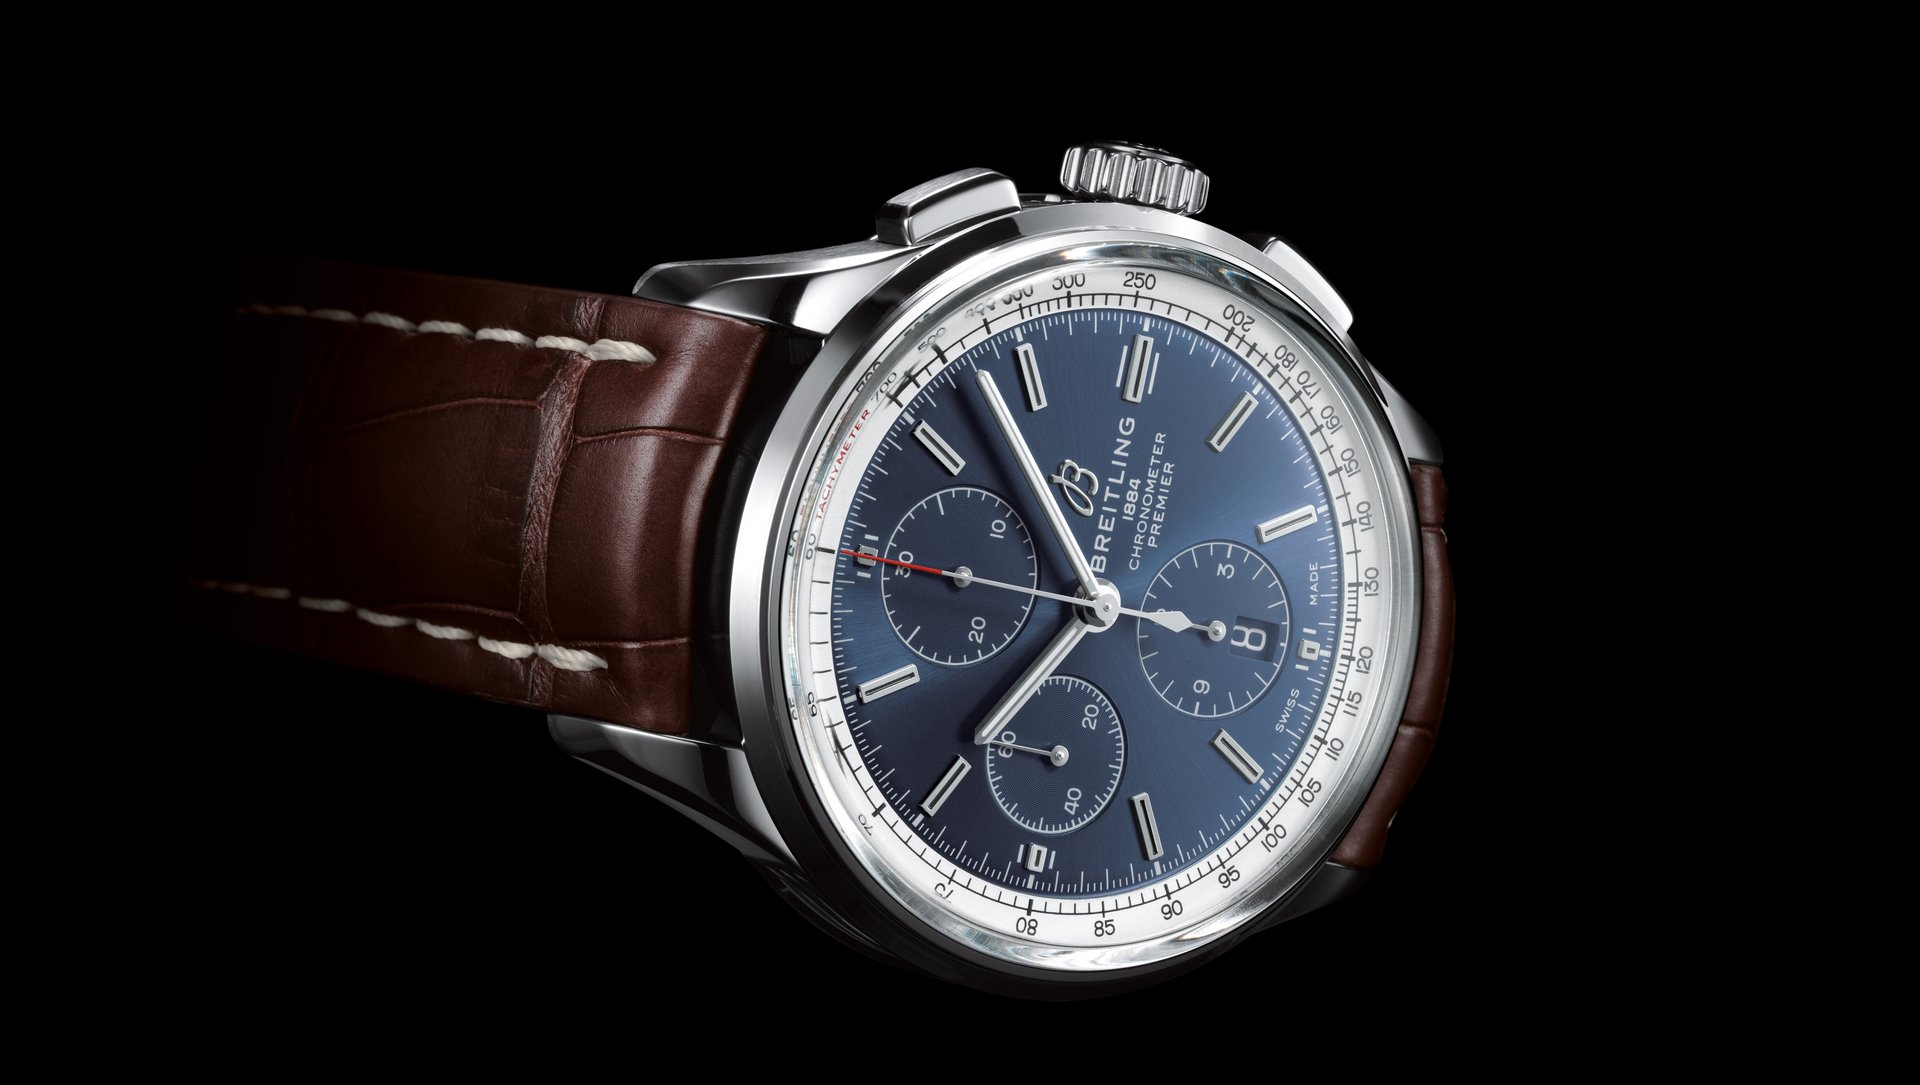 Naziv: 01_premier-chronograph-42-with-blue-dial-and-brown-alligator-leather-strap.jpg, pregleda: 206, veličina: 162,7 KB